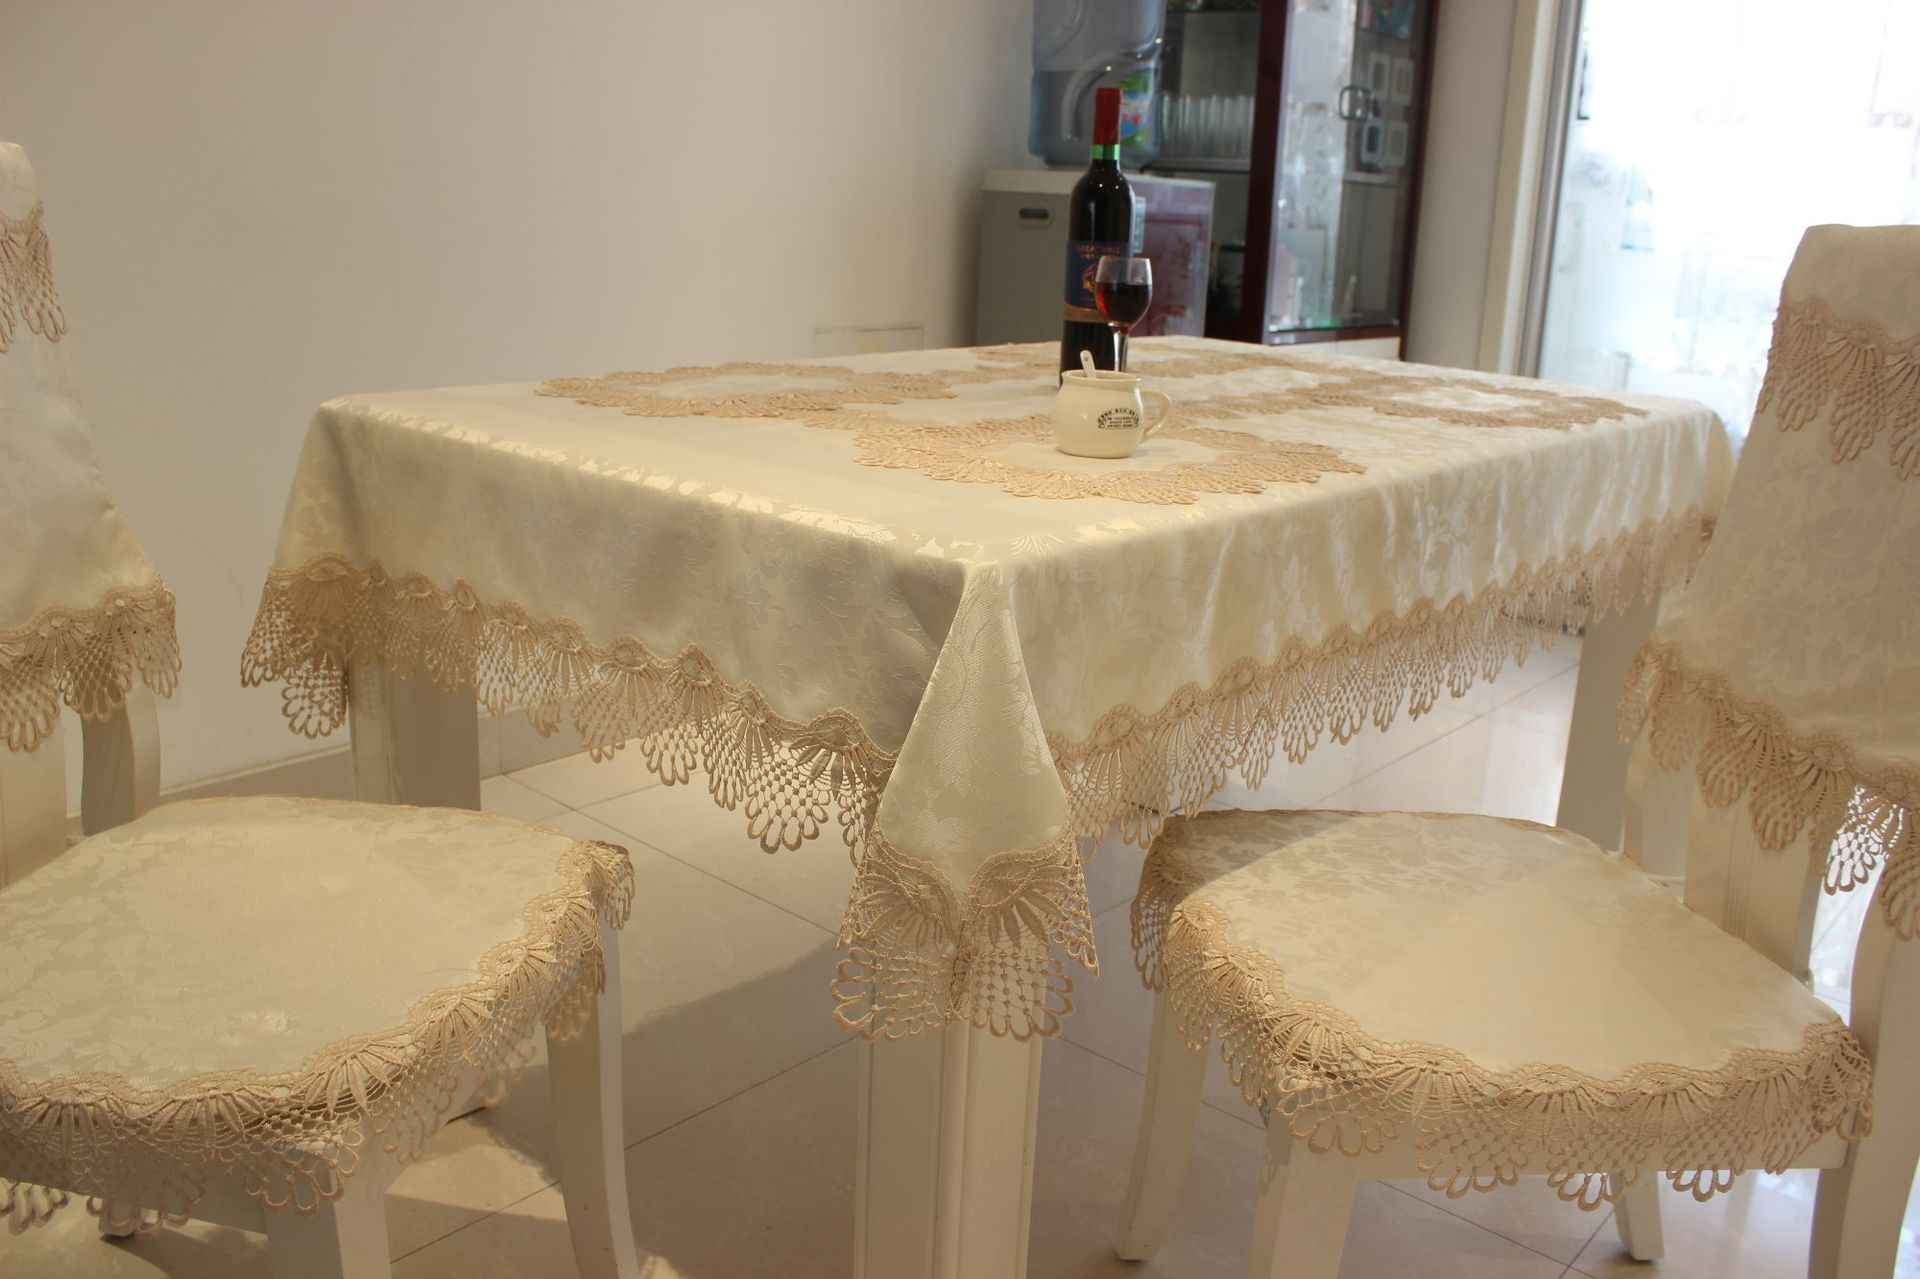 150 270cm Large Size Home Decor Textile Towel Table Cloth Lace Tablecloth Rectangular Round Oval Dining Table Cover Table Cloths Tablecloths Aliexpress